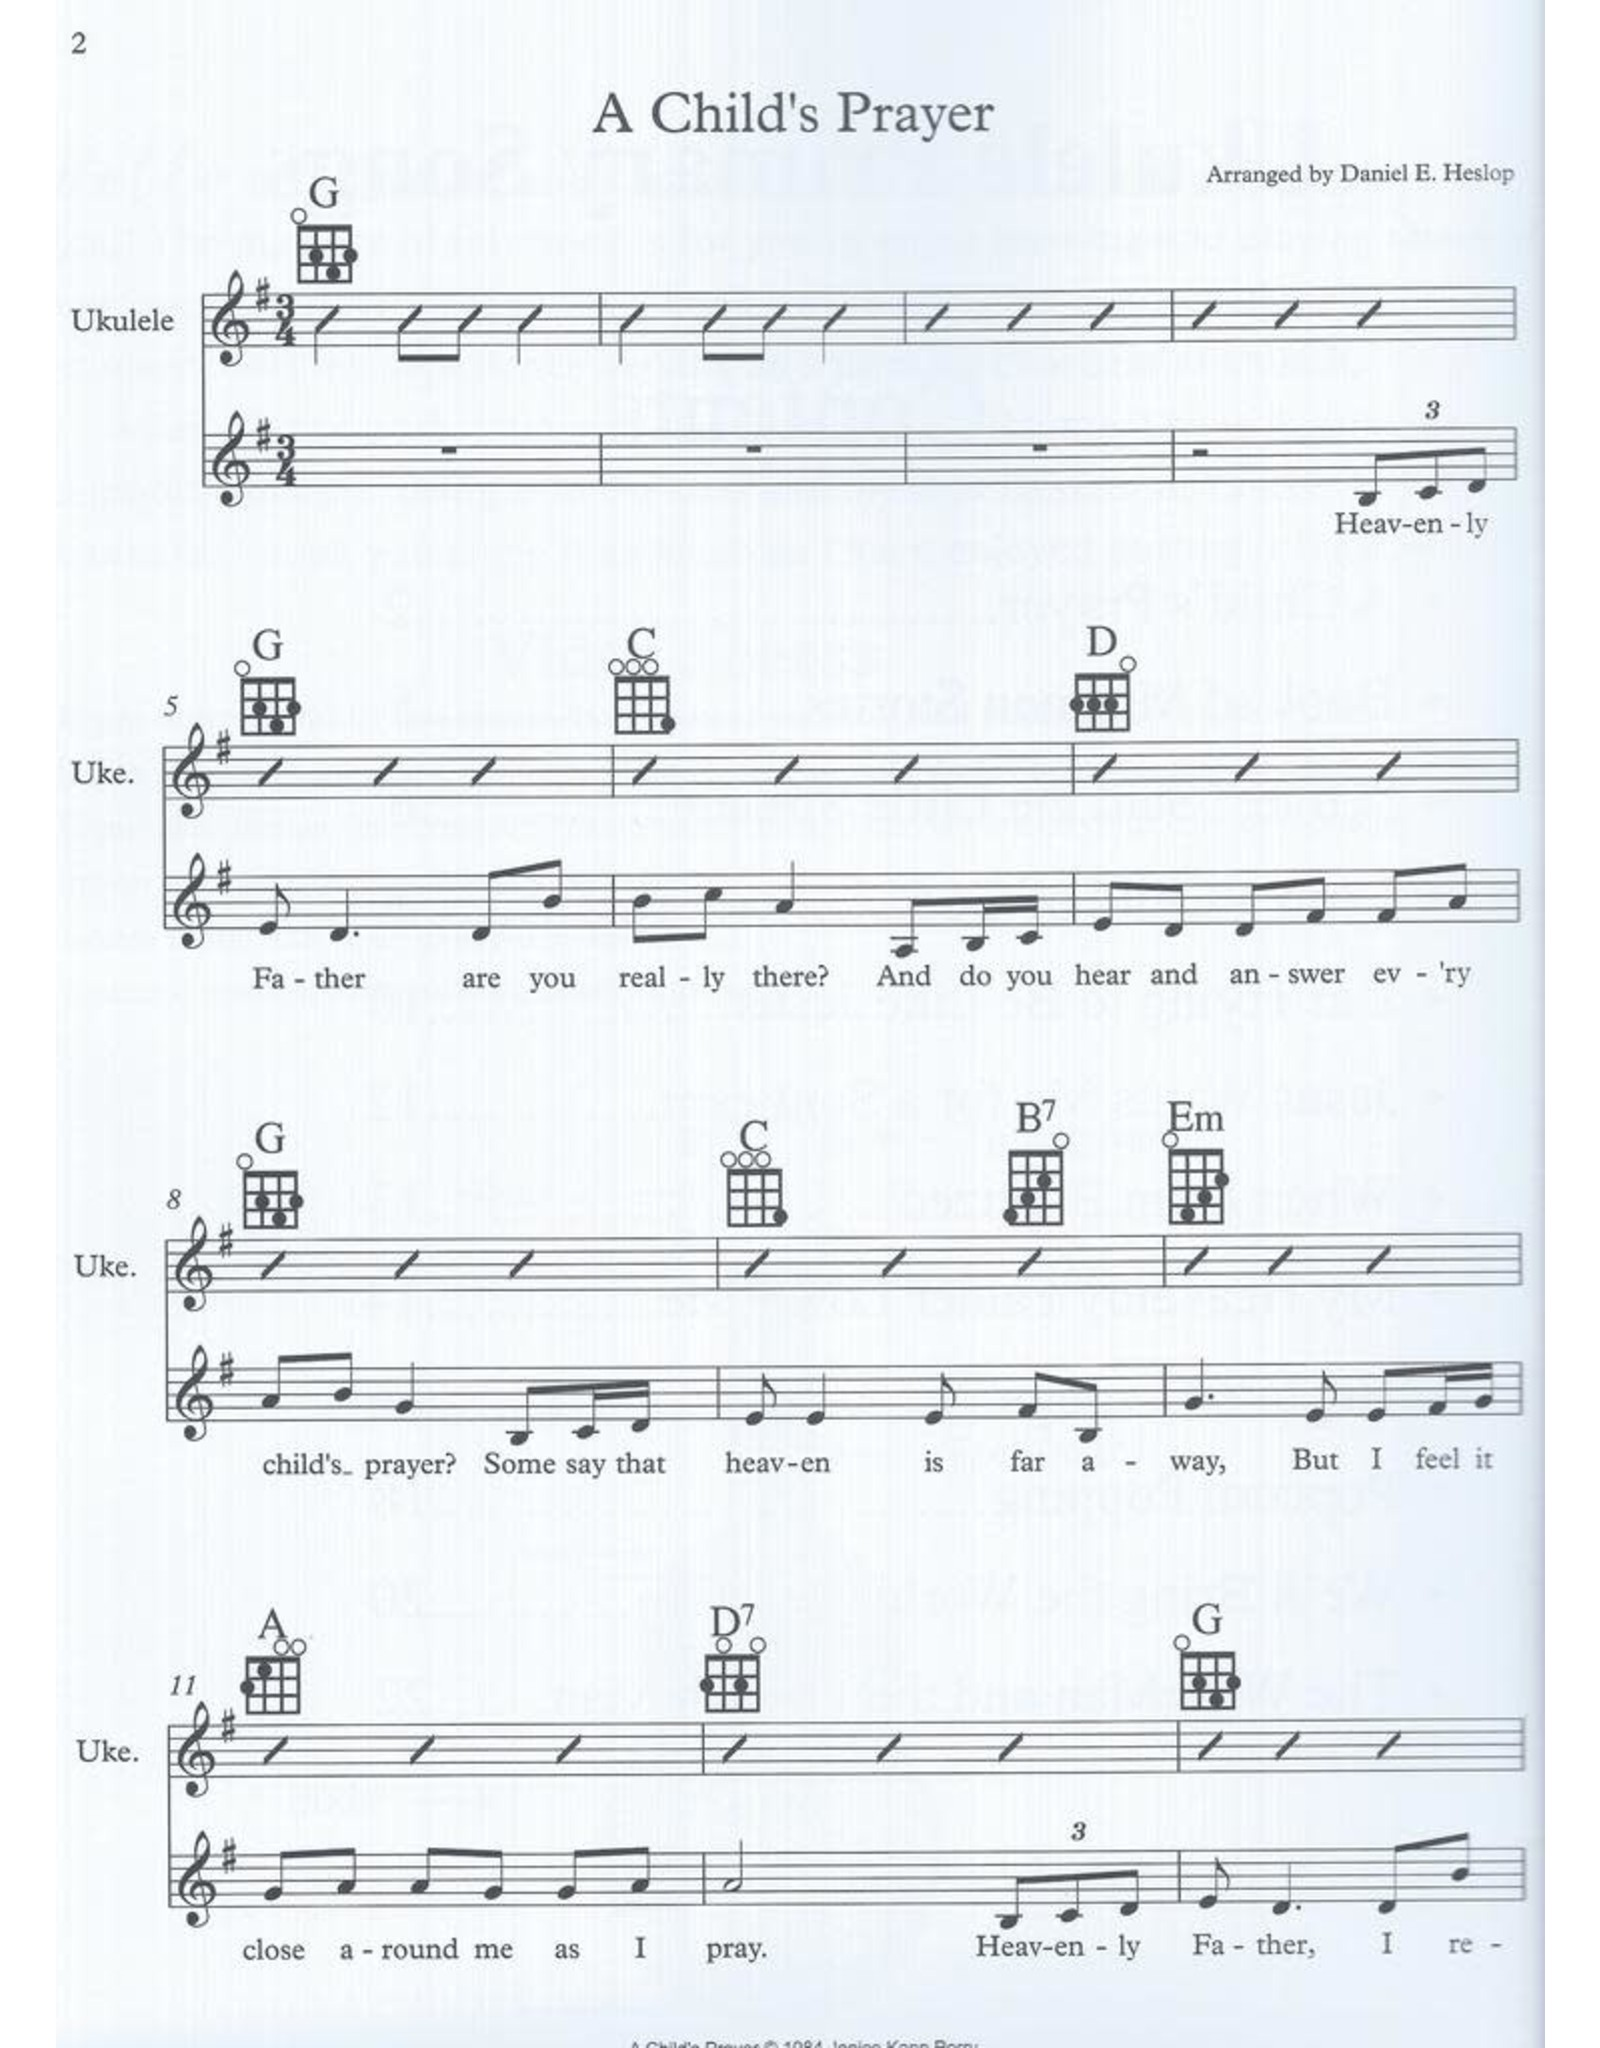 Danny Heslop Music Ukulele Primary Songs Book 1 arr. Danny Heslop